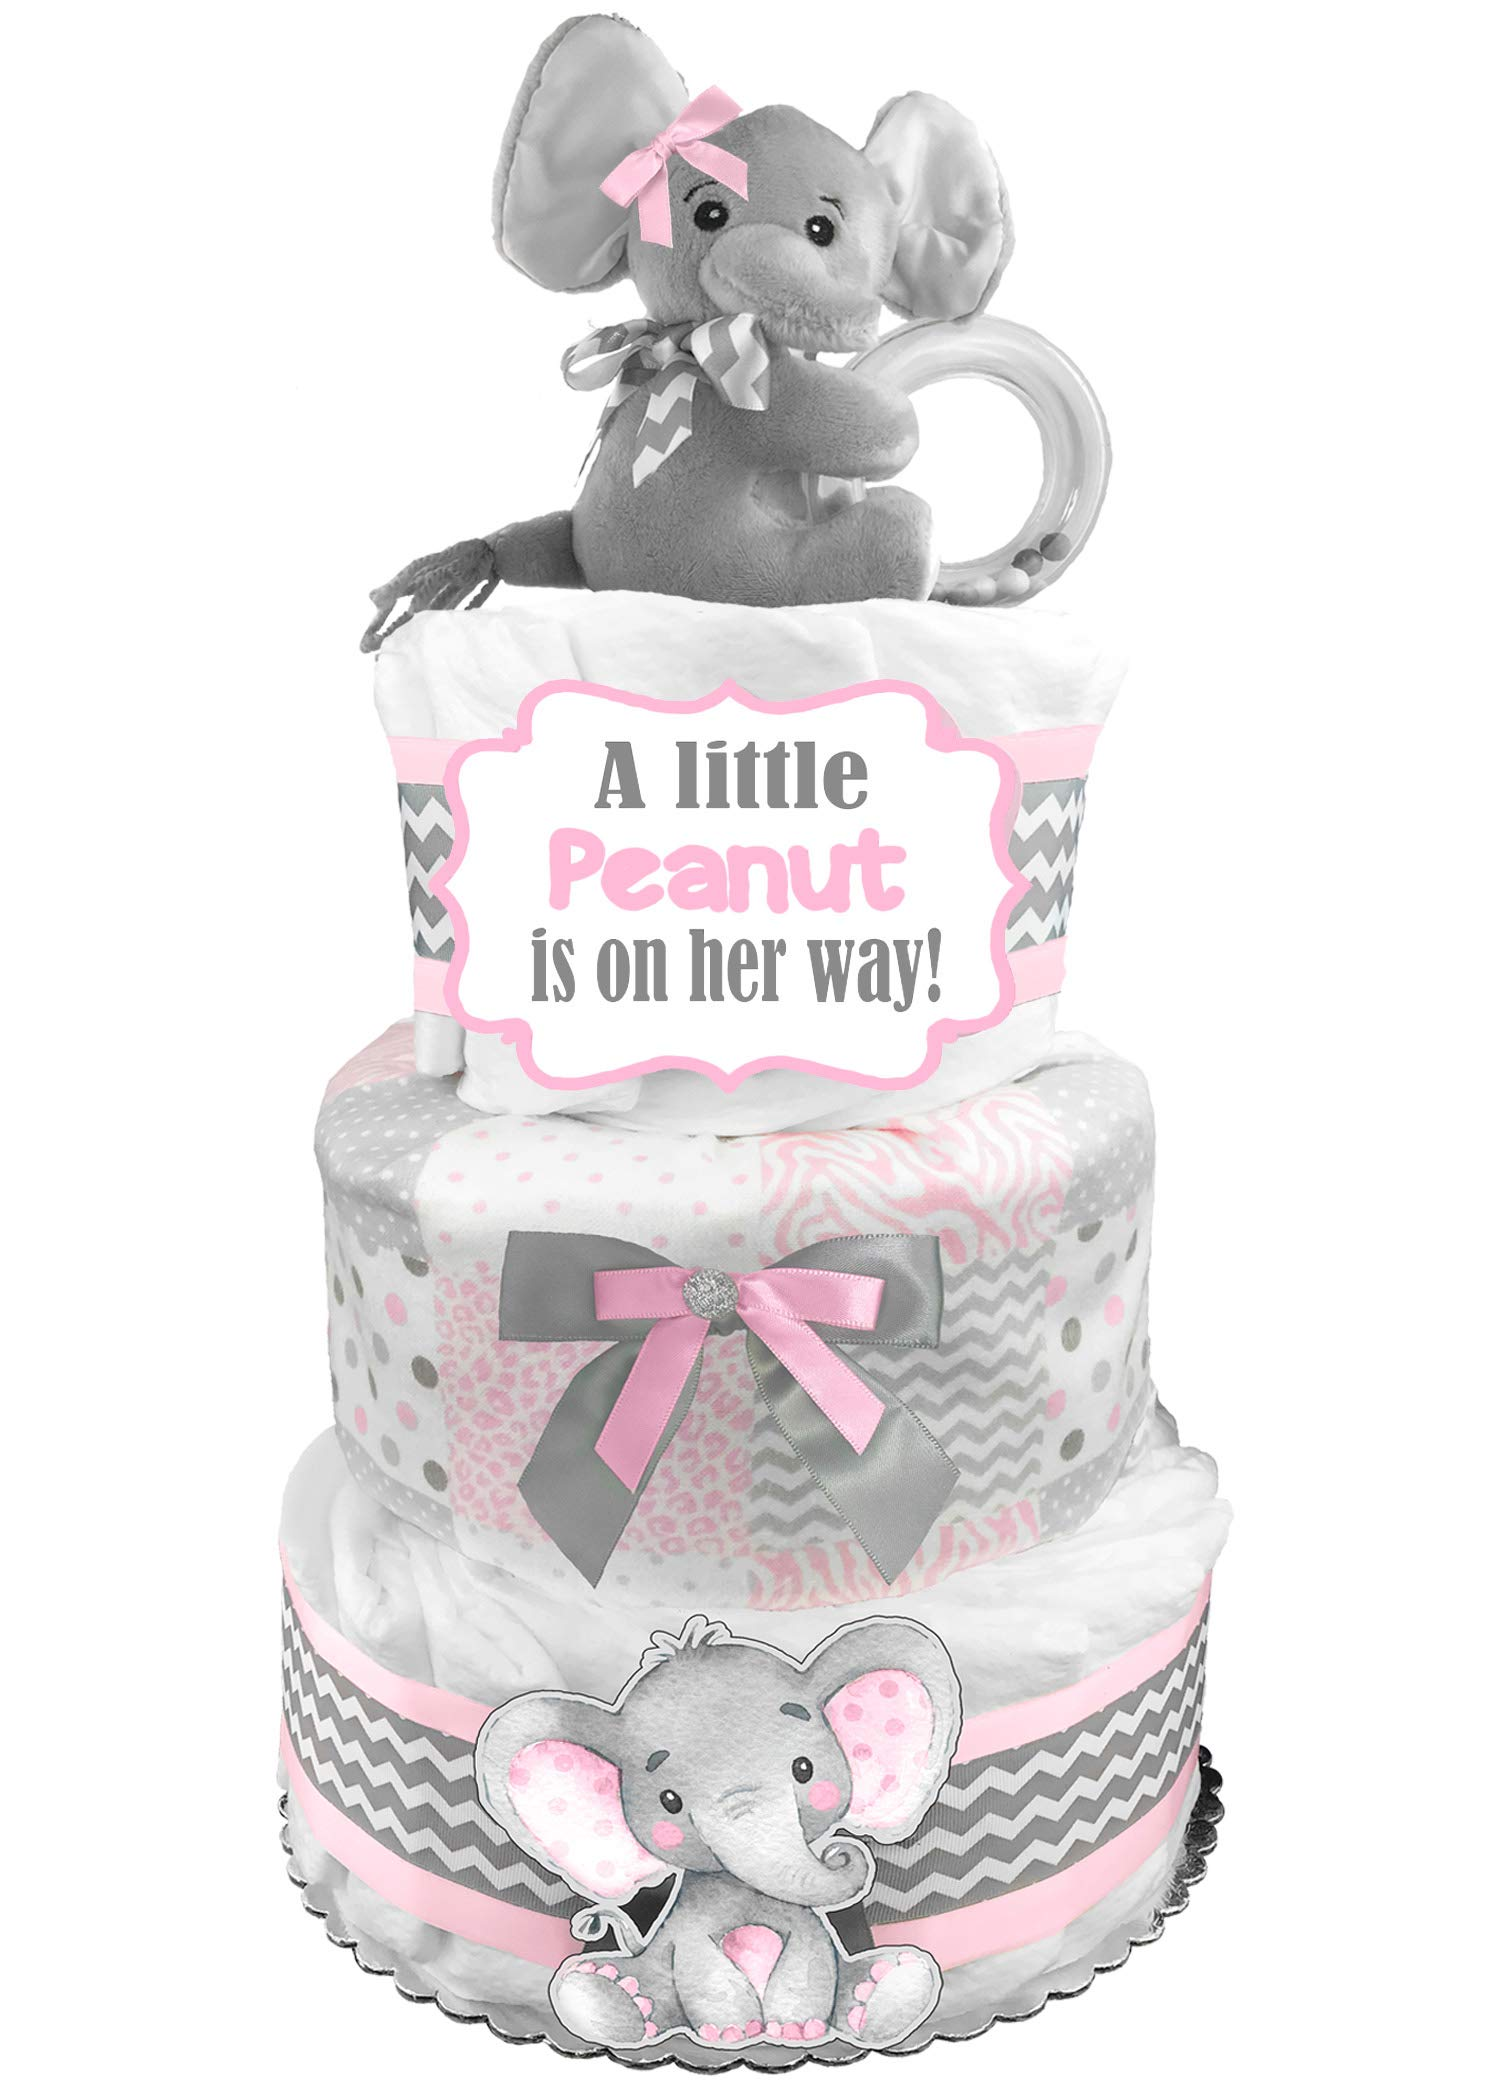 Elephant 3-Tier Diaper Cake - Little Peanut - Baby Shower Gift - Pink and Gray